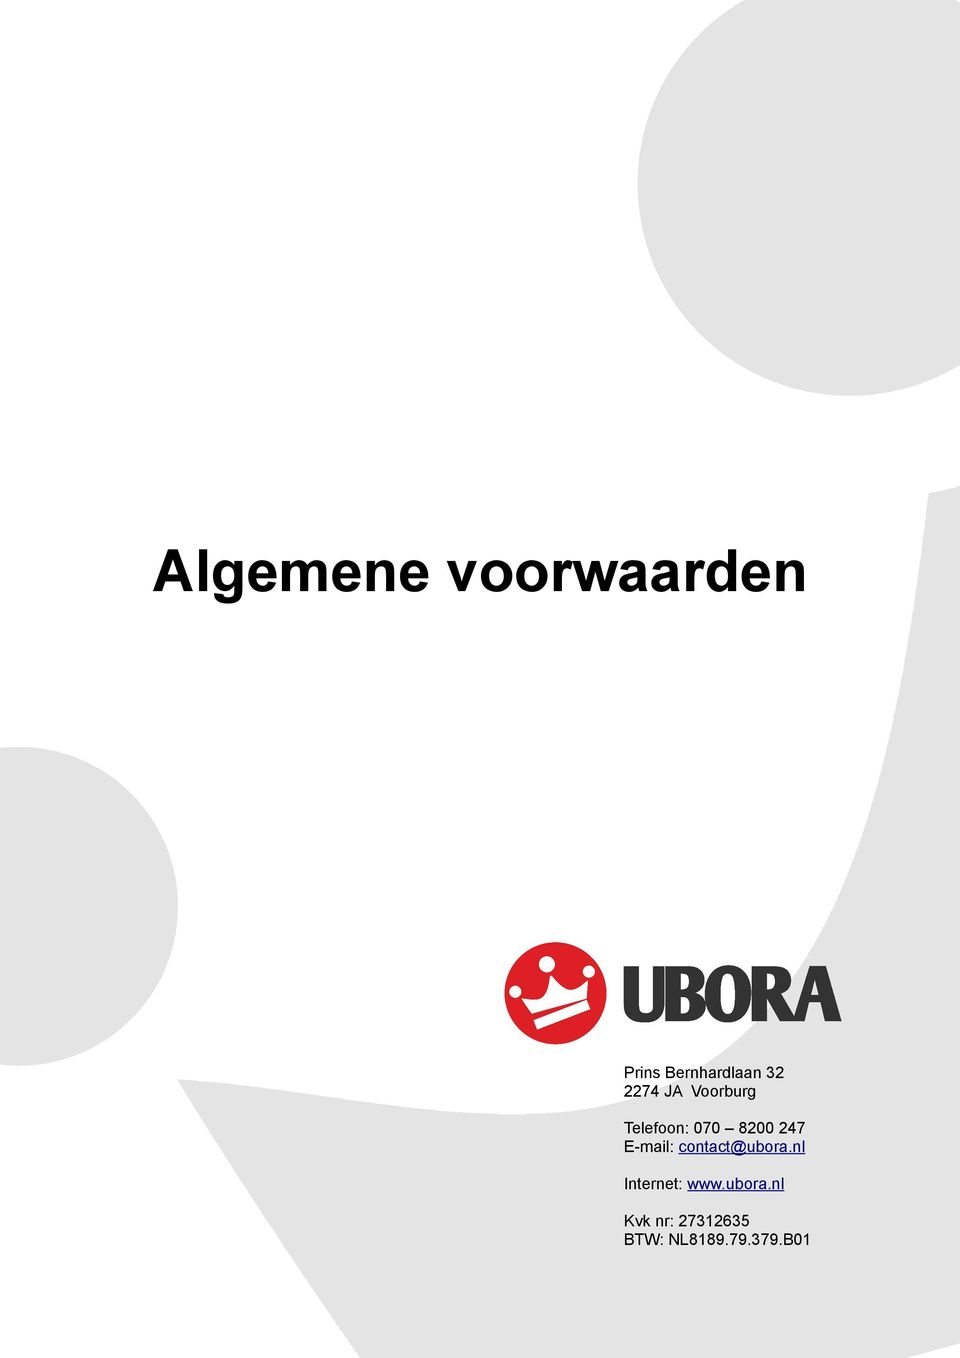 E-mail: contact@ubora.nl Internet: www.